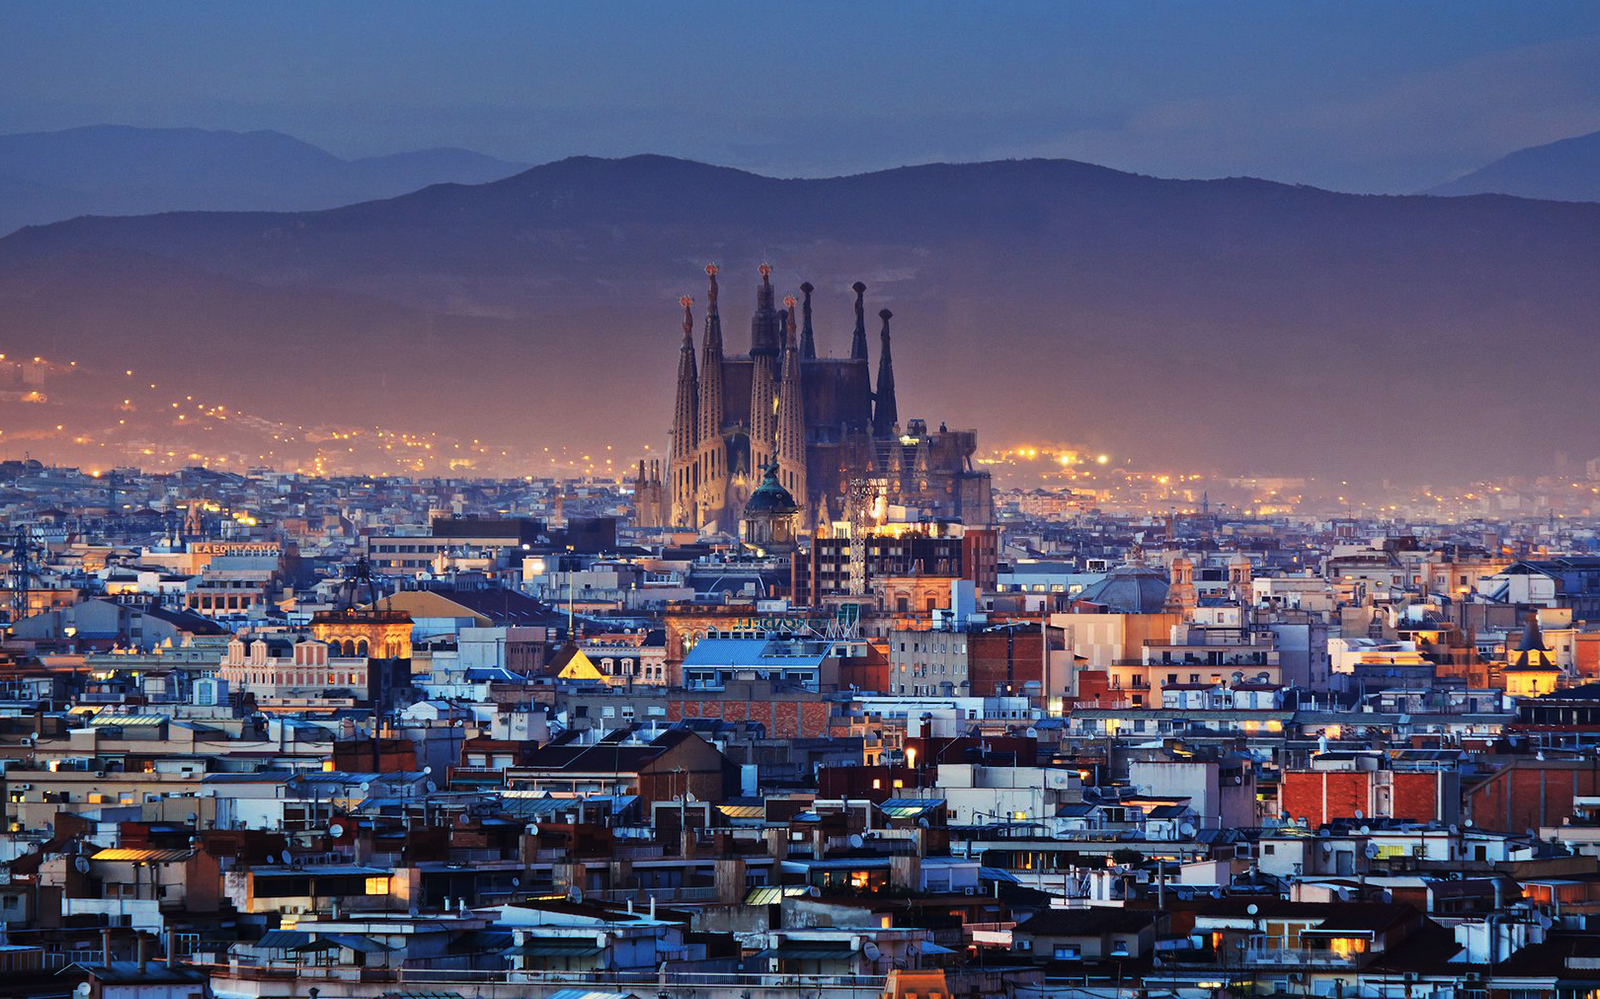 2426ac13 a8fe 4850 b070 ce70fe574d01 7603 barcelona sagrada familia skyline night 02